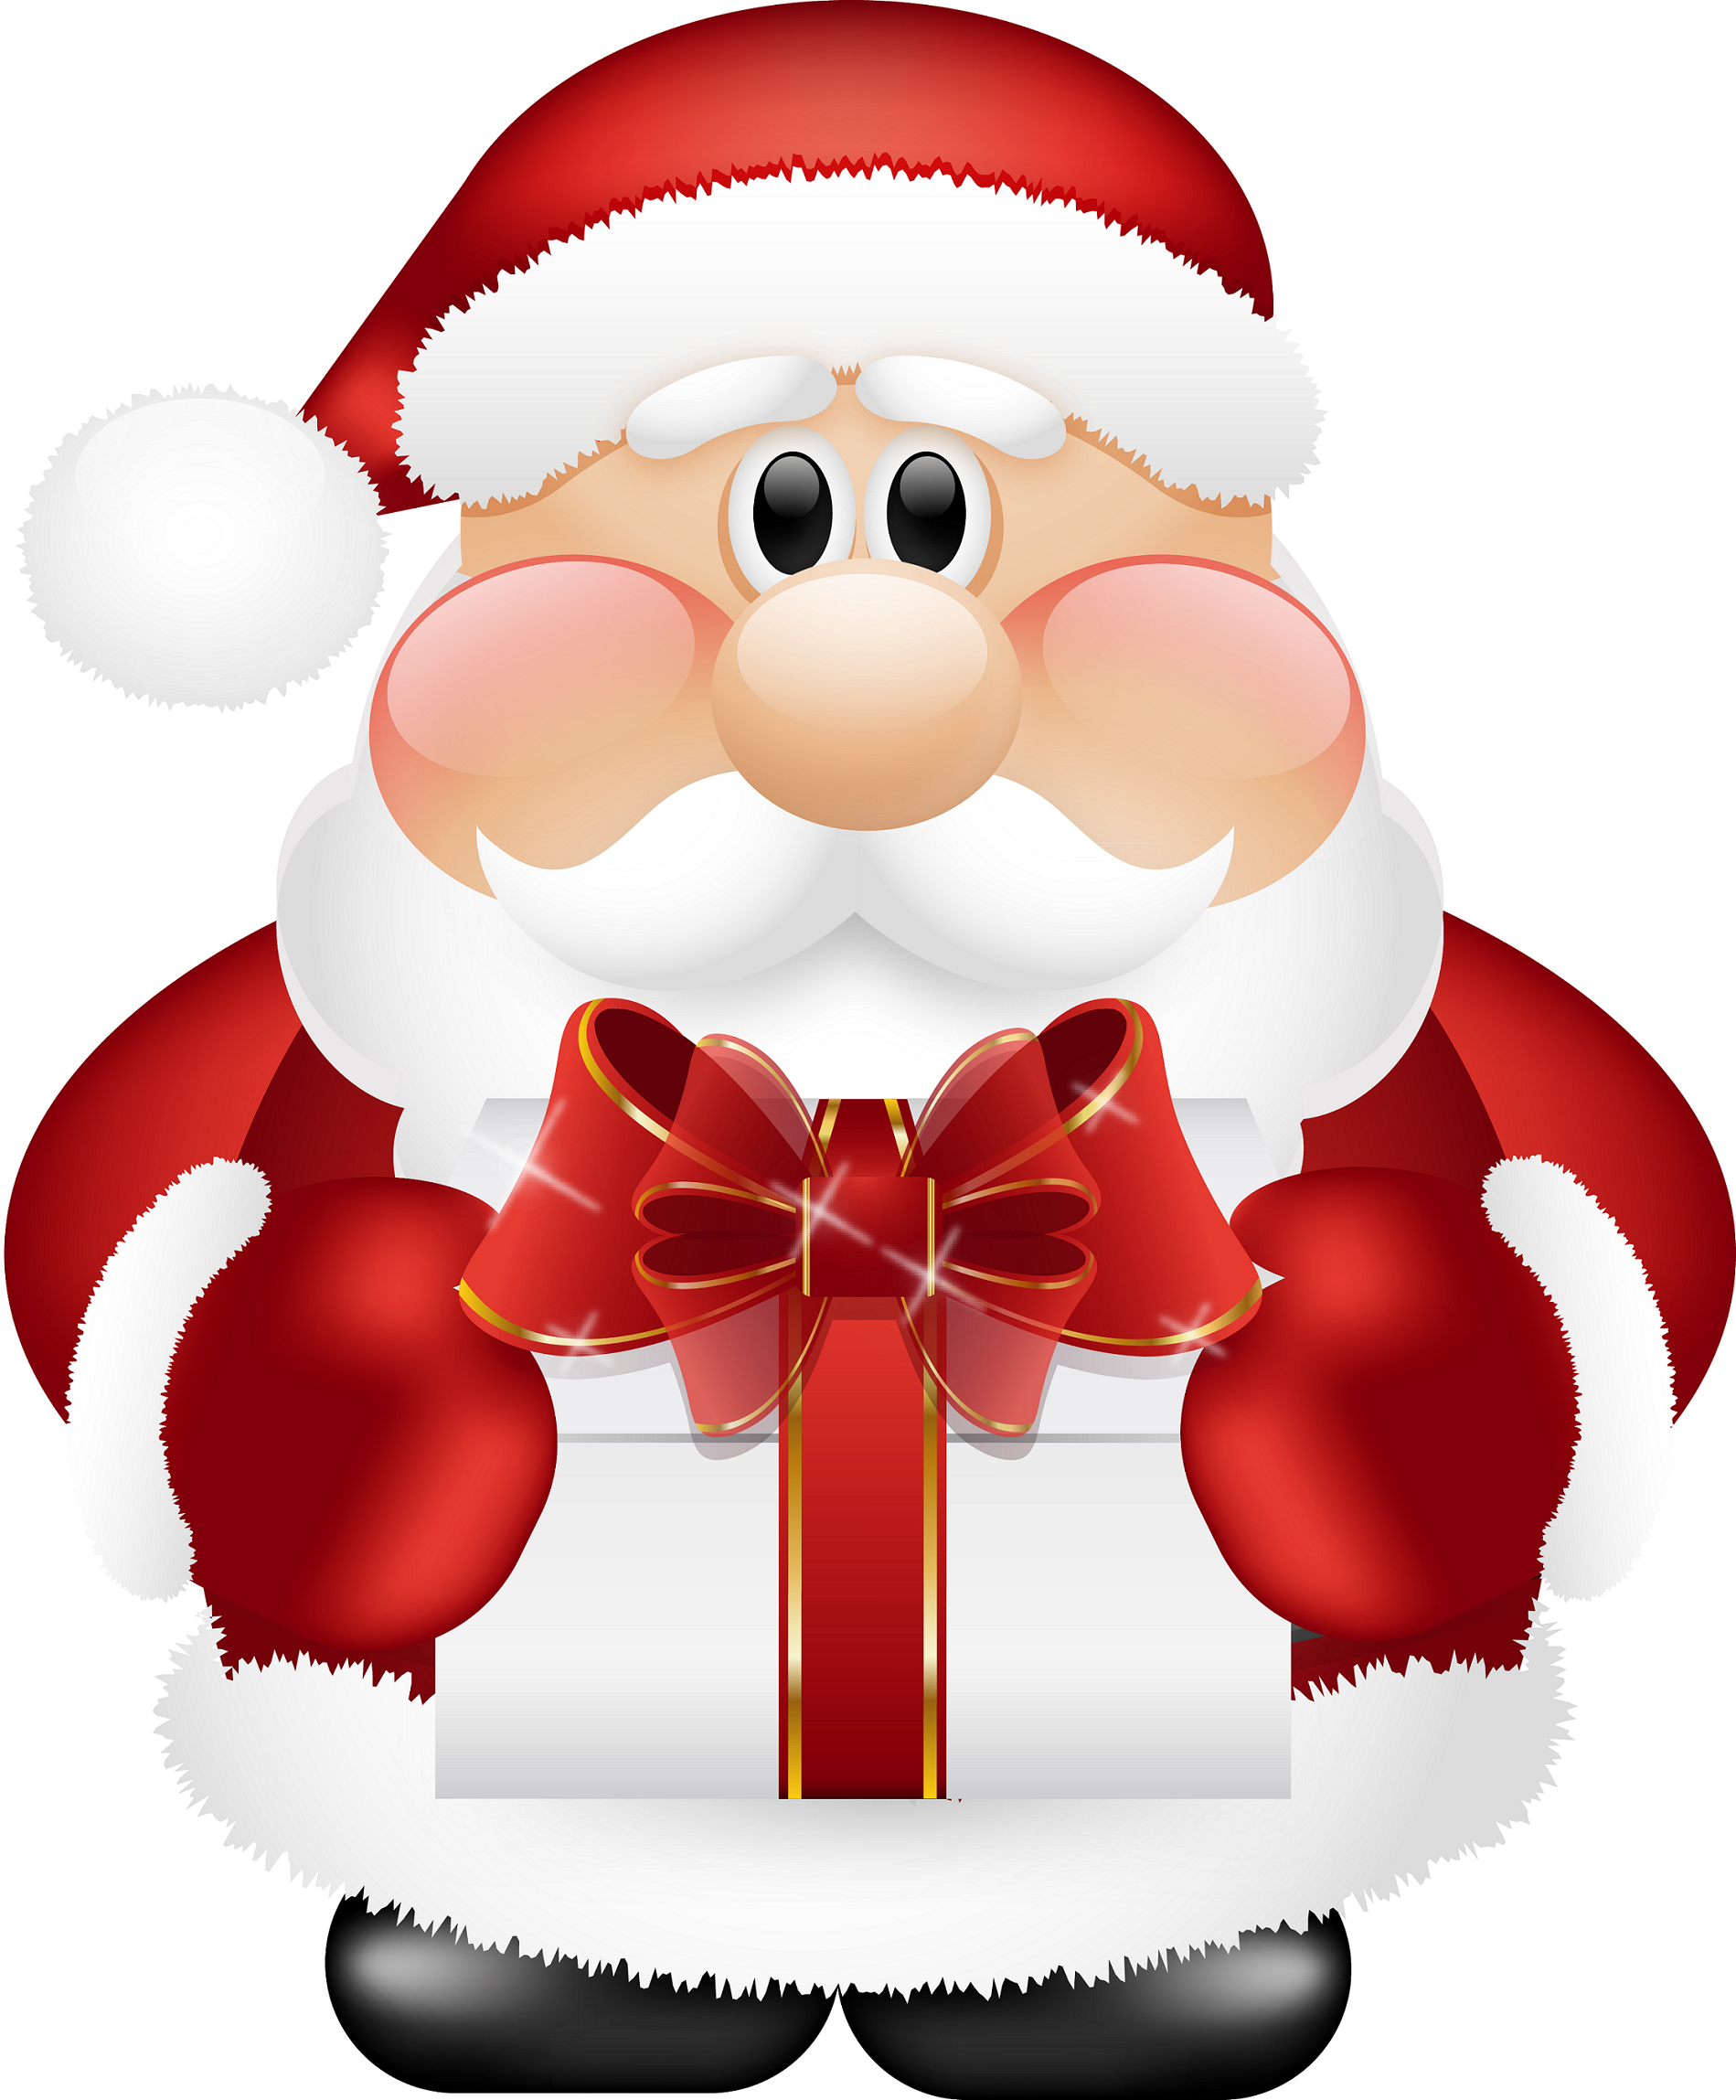 Kris kringle clipart black and white What Did Santa Claus Bring For You On Christmas Eve? | Kris Kringle ... black and white